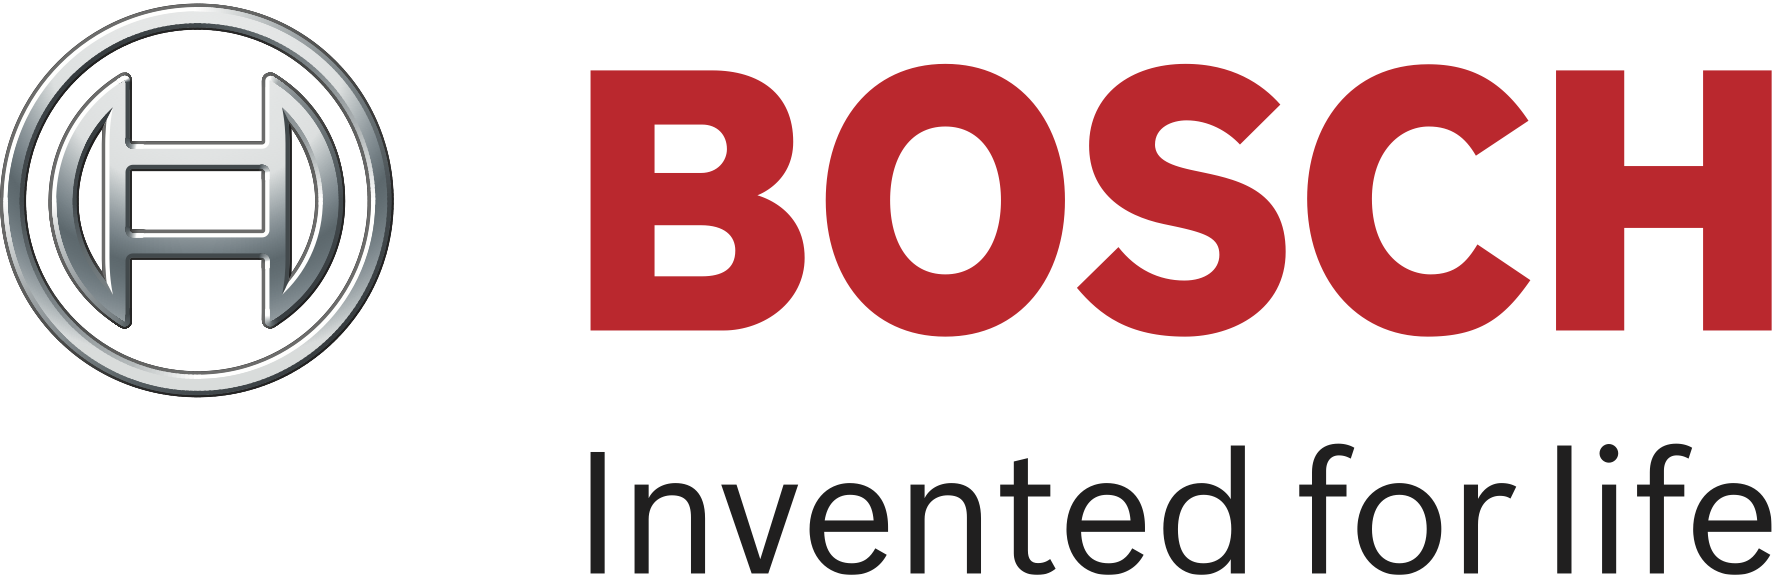 Bosch empowers you to build a safer